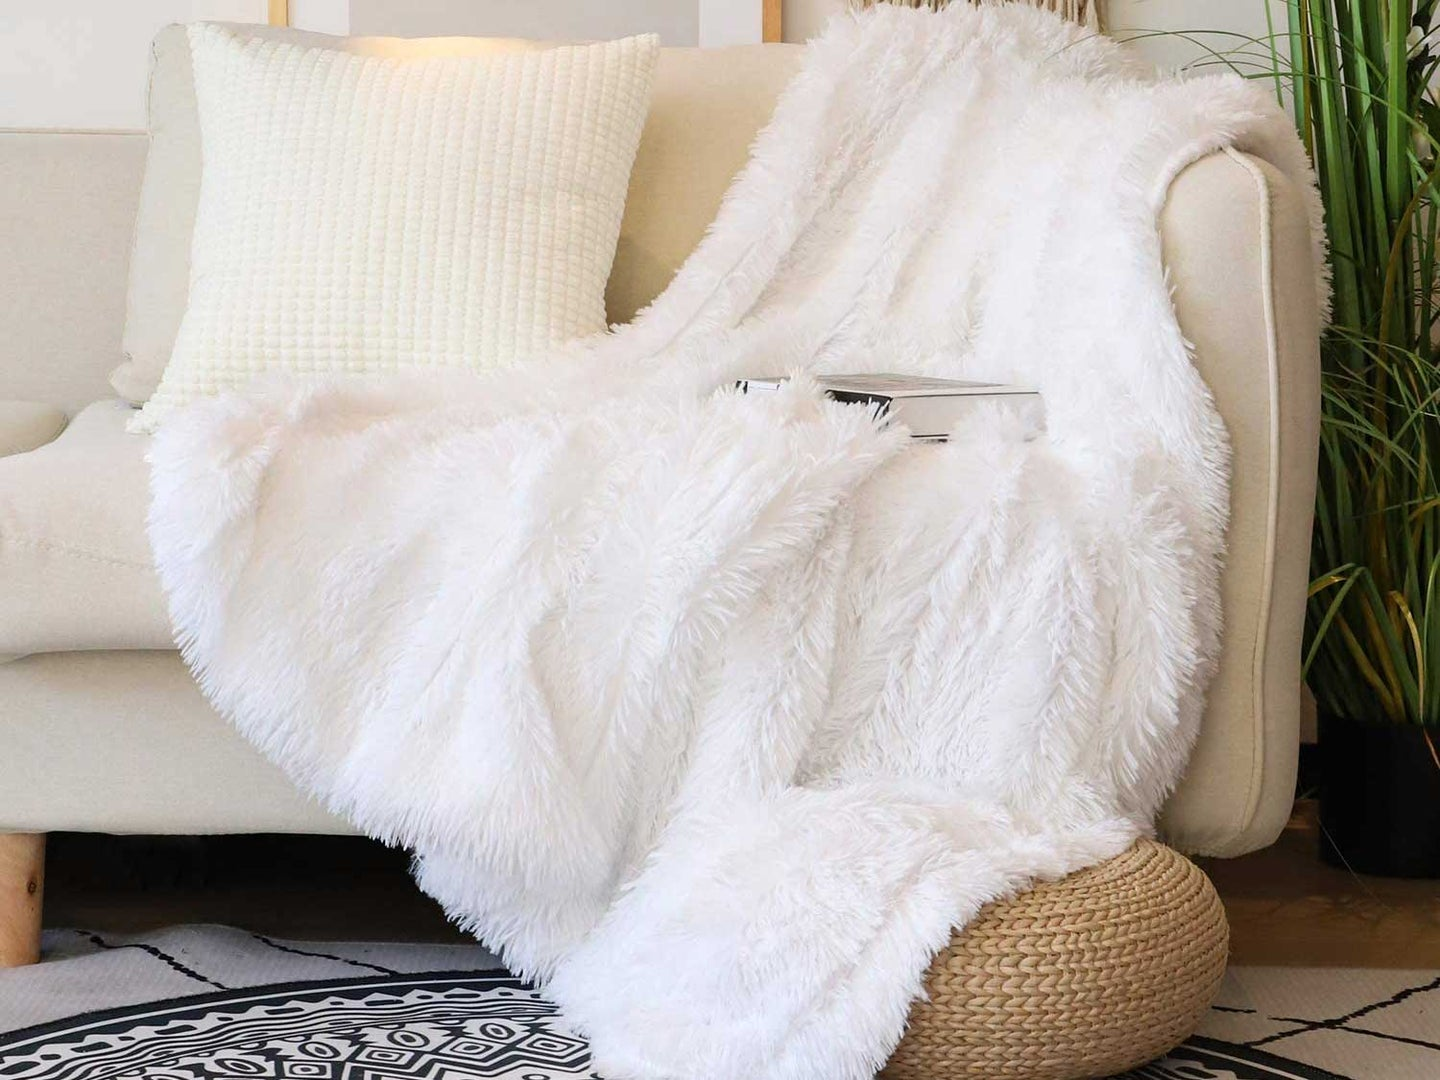 Soft throw on couch.